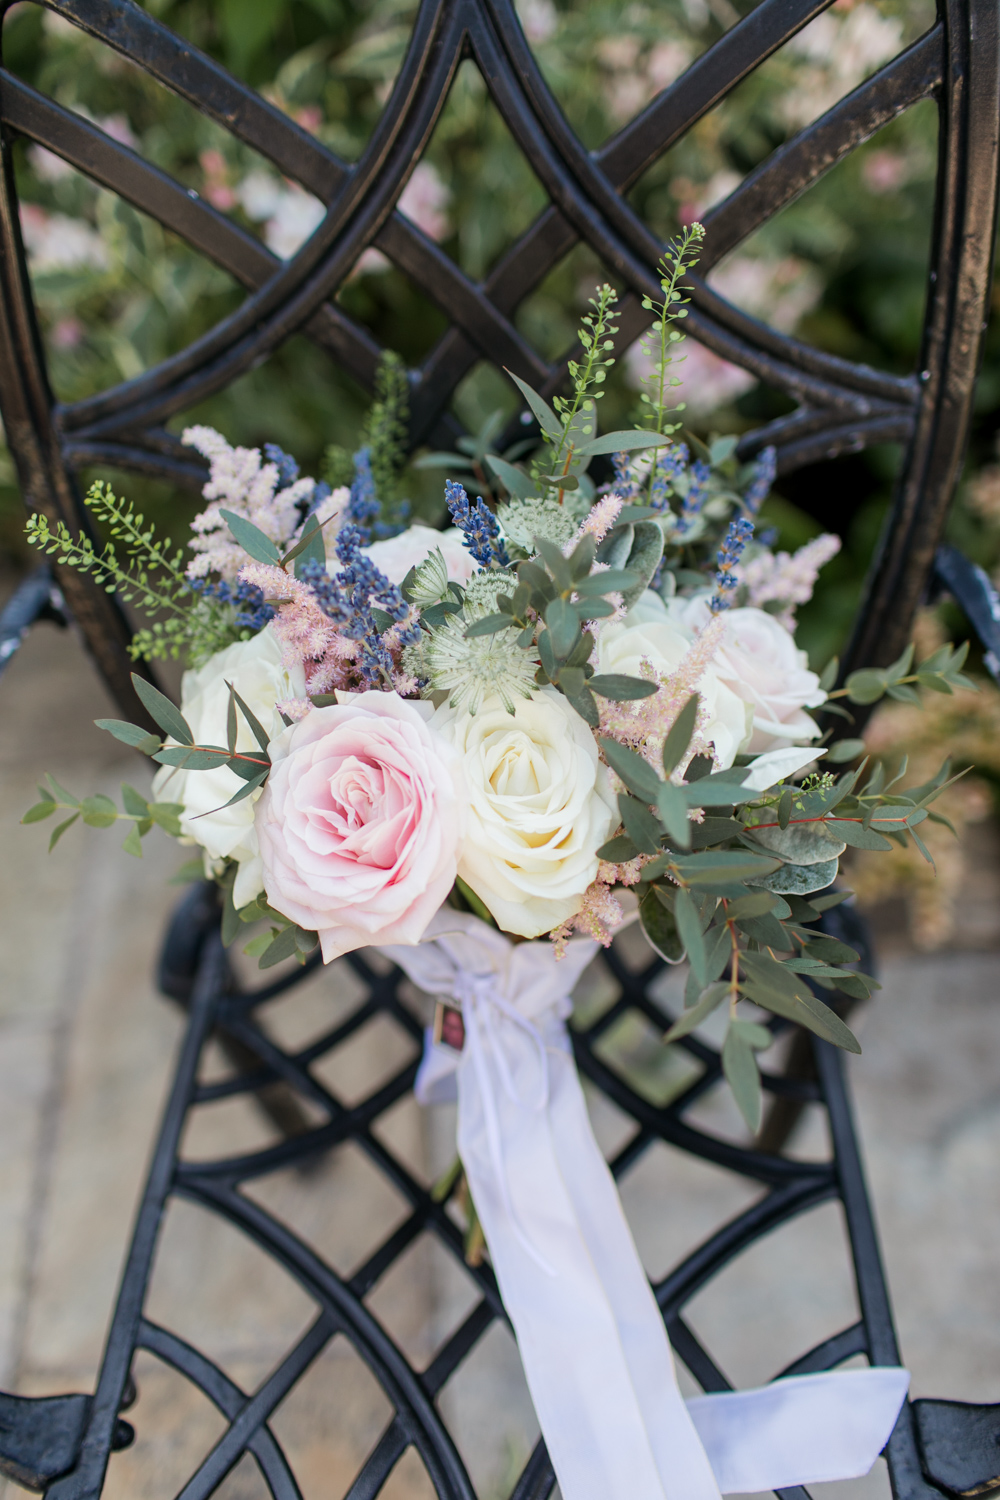 Bridal bouquet with wildflowers pink and white roses in a loose grip